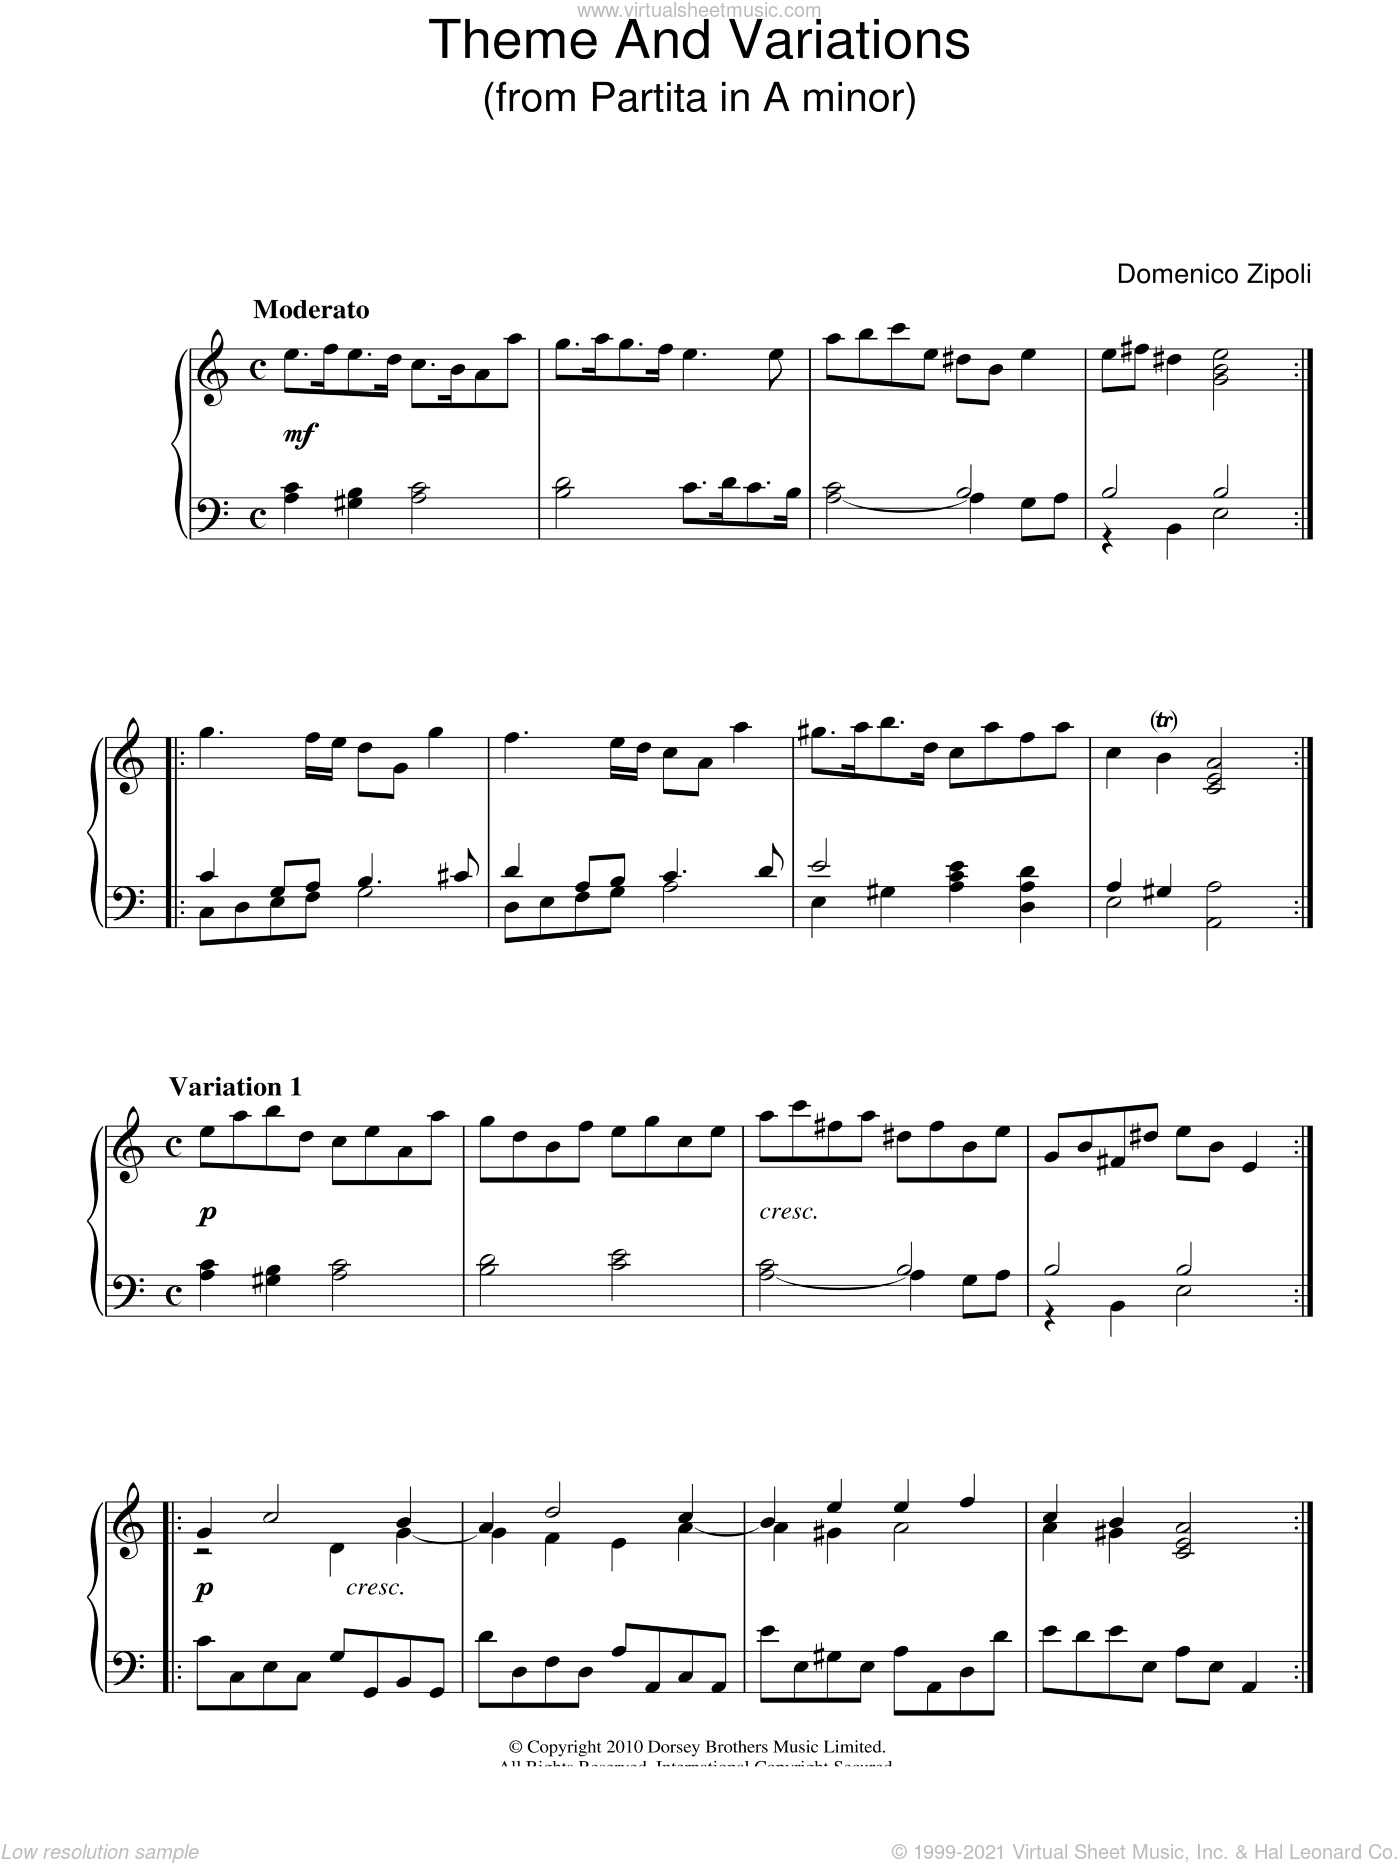 Theme And Variations From Partita In A Minor sheet music for piano solo by Domenico Zipoli. Score Image Preview.